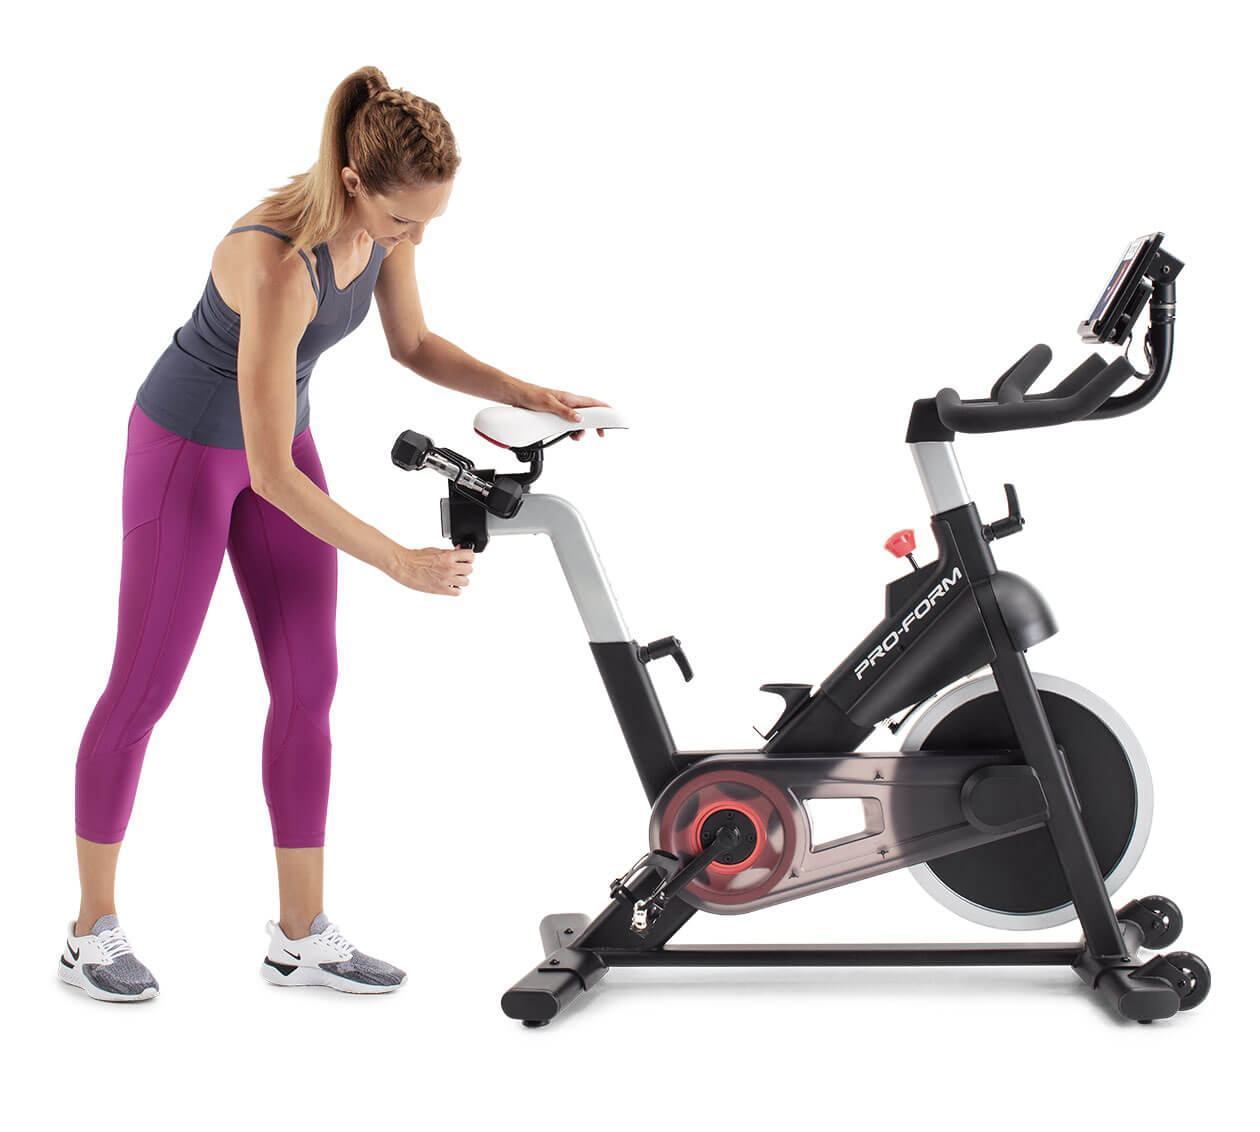 image showing adjustable features of the exercise bike